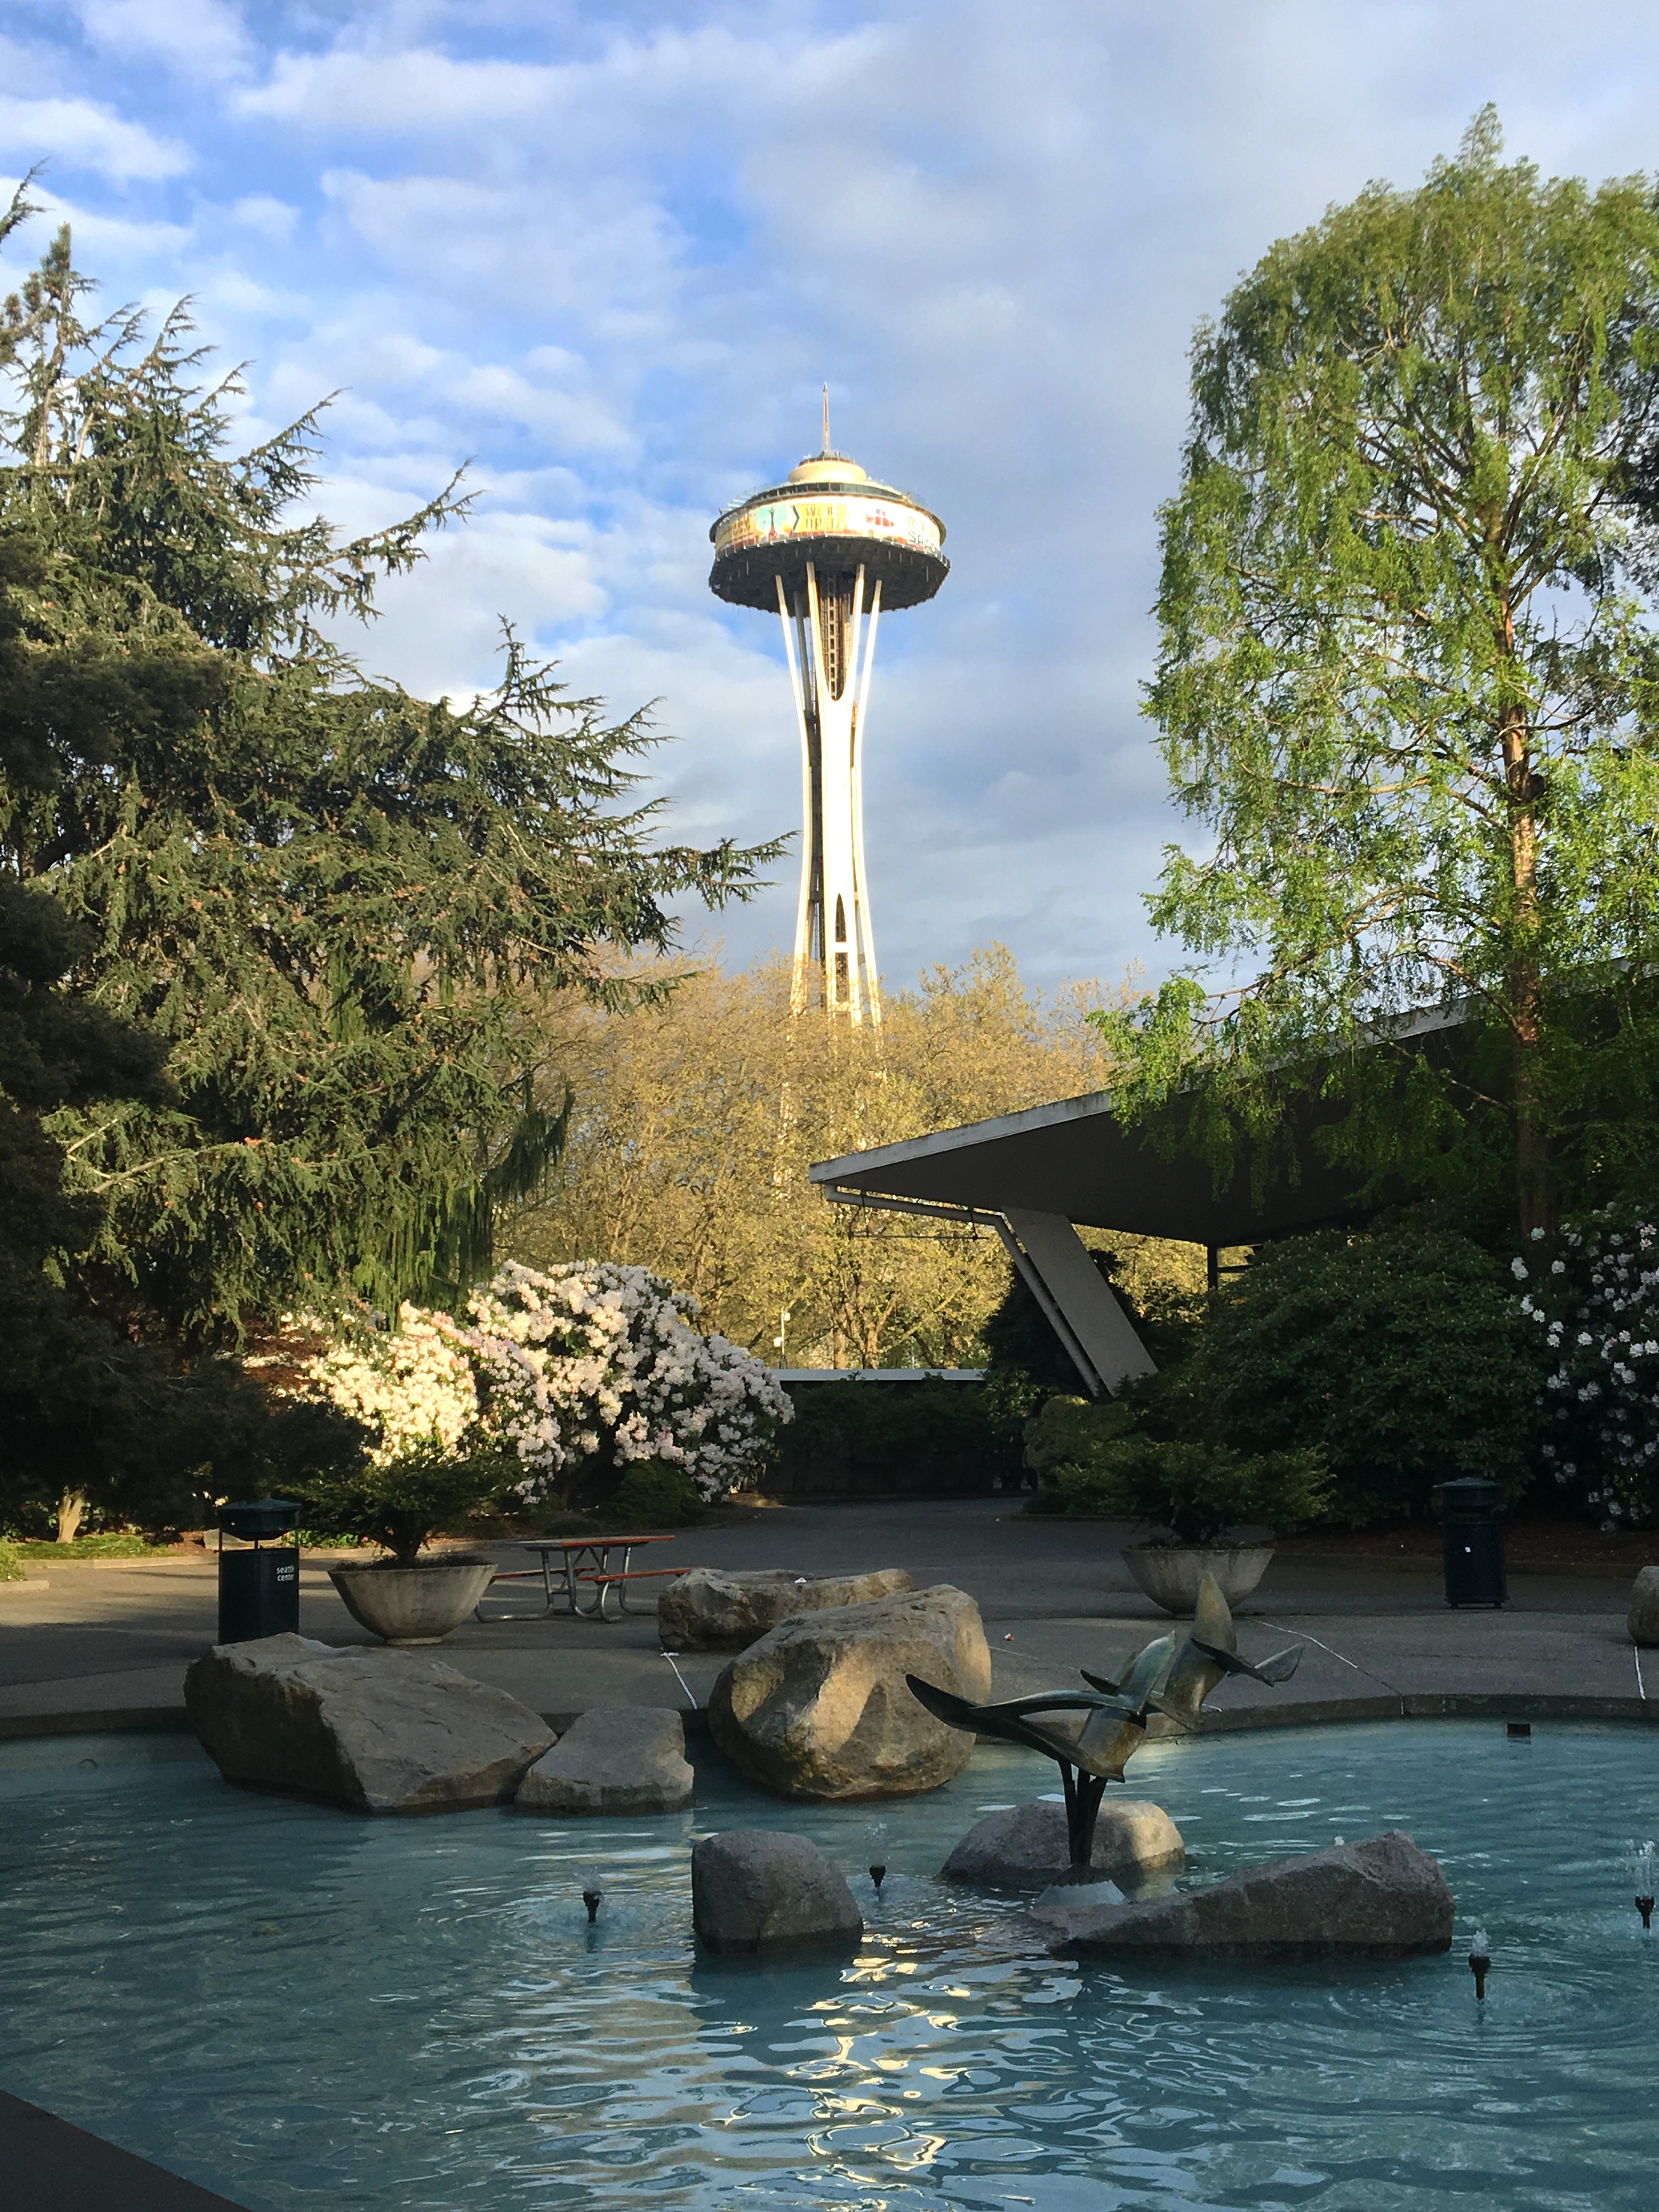 seattle space needle from park pond